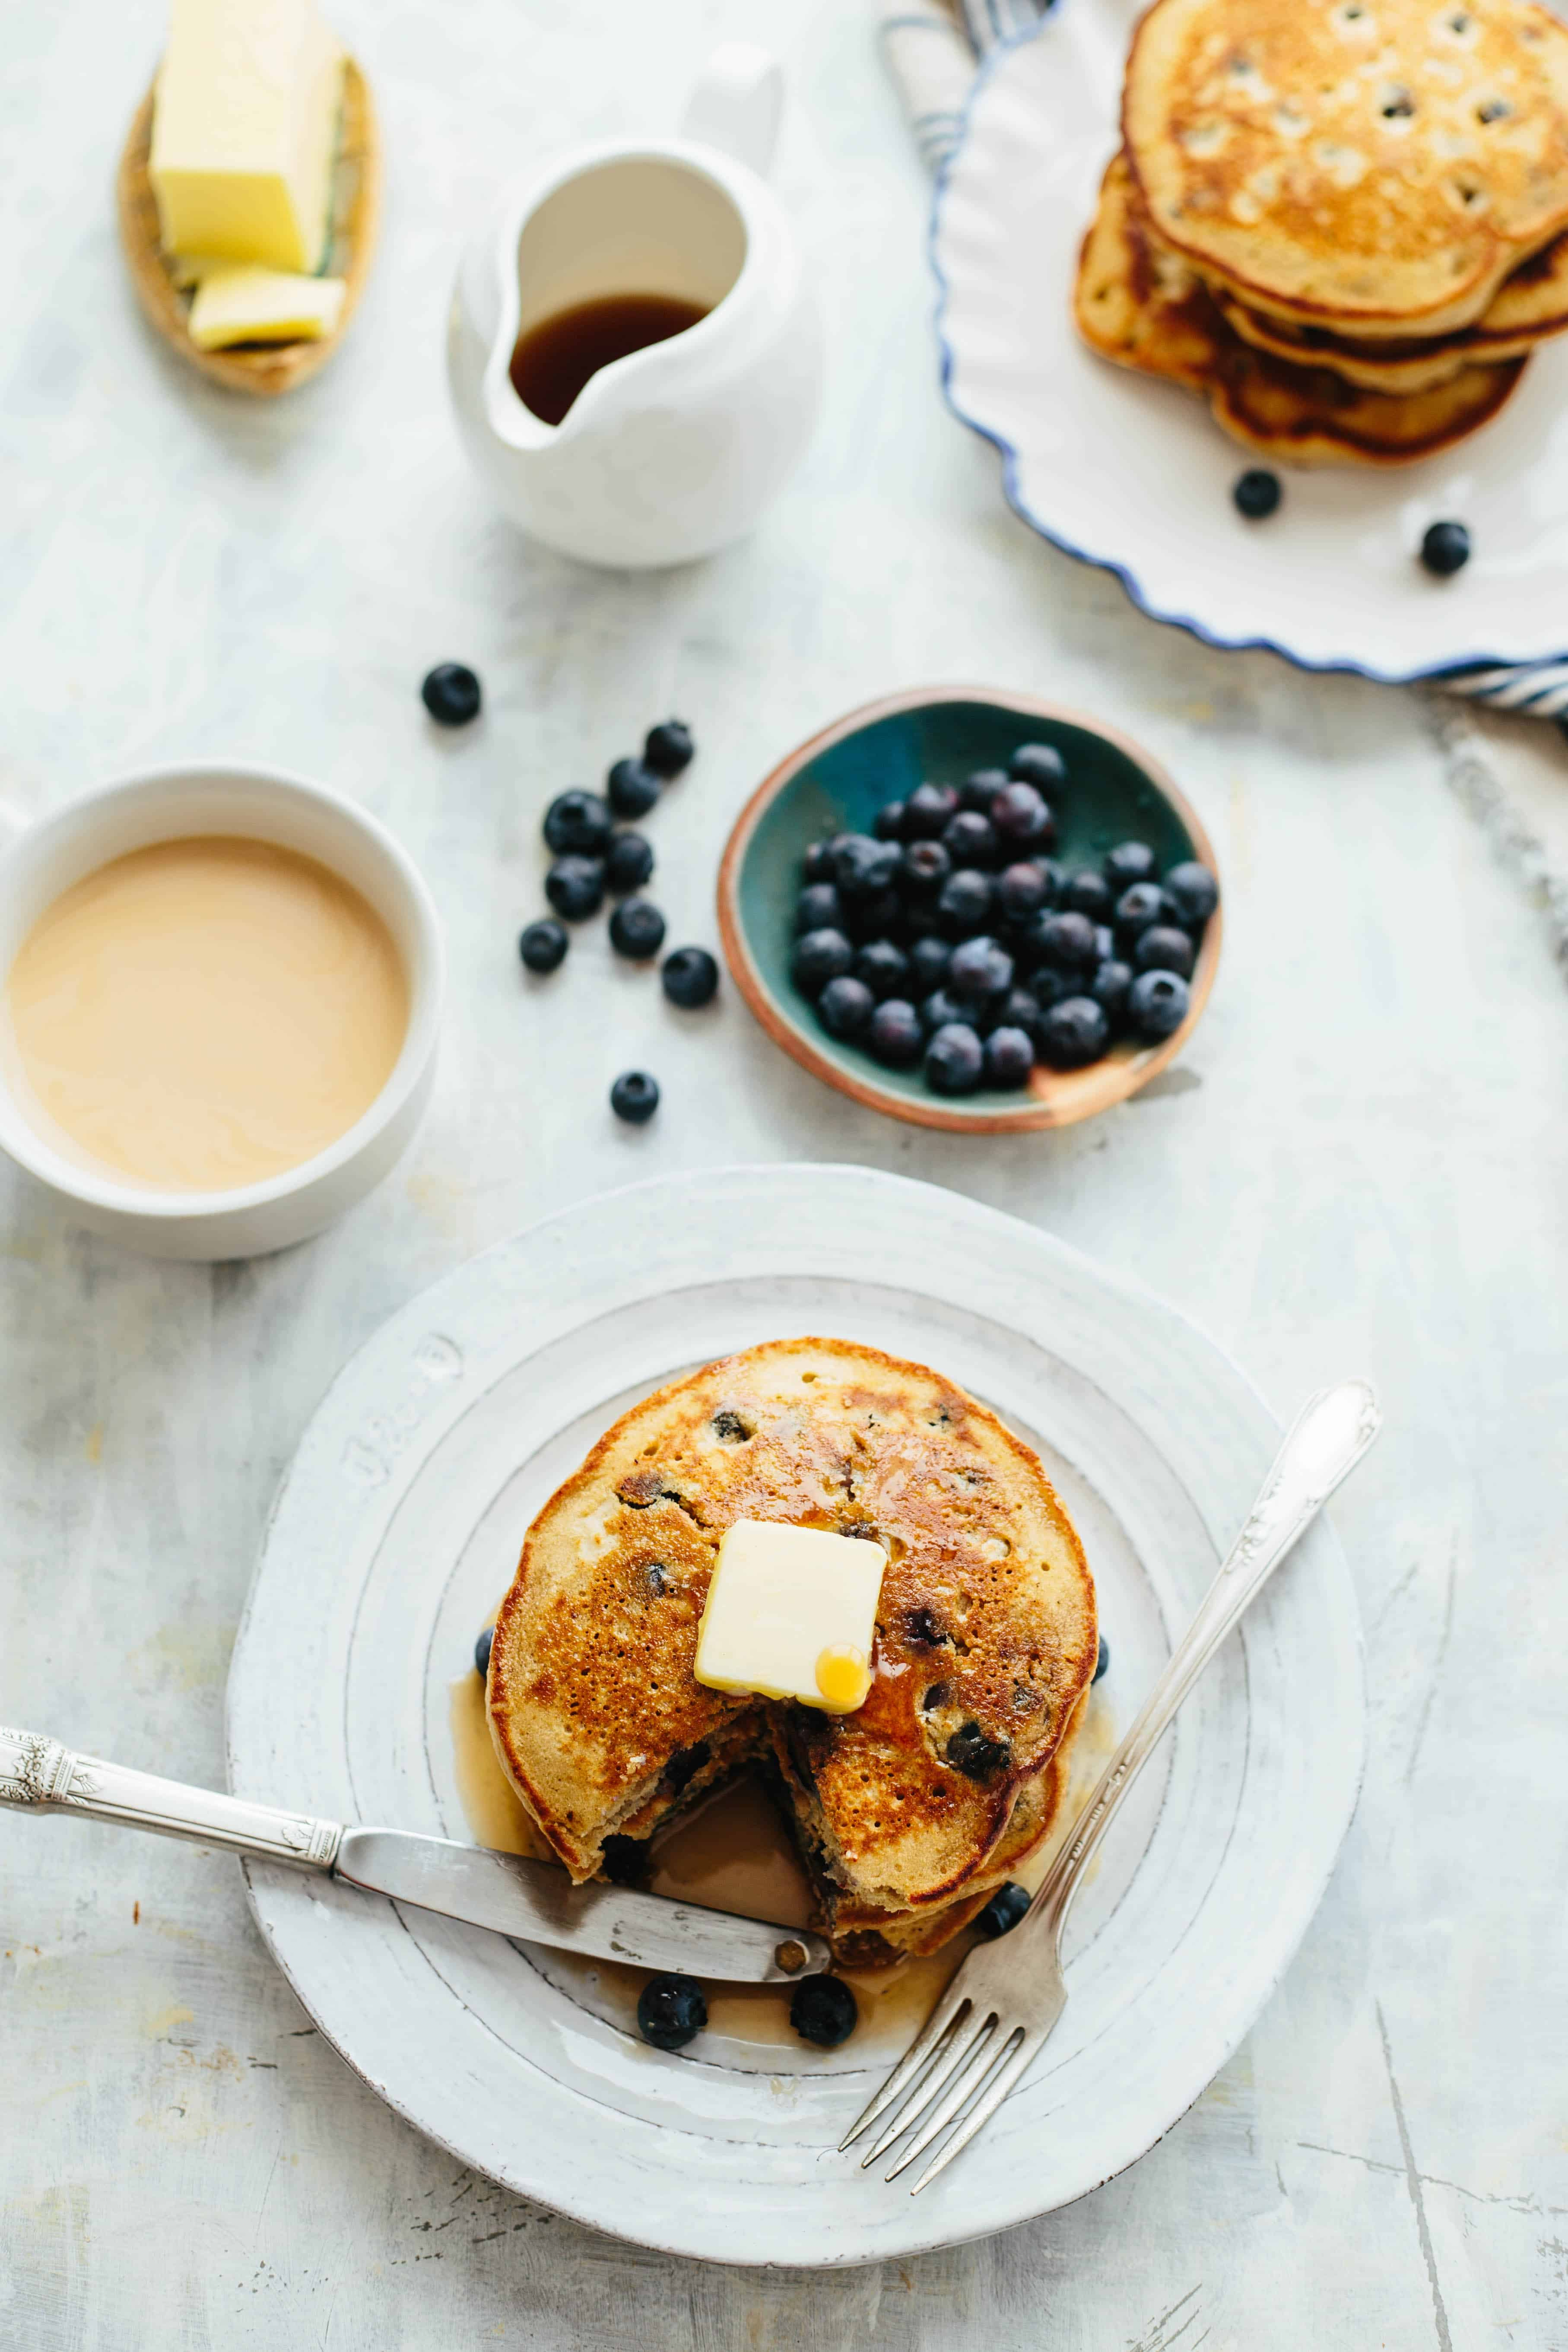 These blueberry oatmeal pancakes are light, fluffy, gluten free, dairy free optional, loaded with fresh juicy blueberries and taste absolutely delicious! #glutenfree #oatmeal #blueberry #pancakes #easy #breakfast #recipe #healthy | ColeyCooks.com